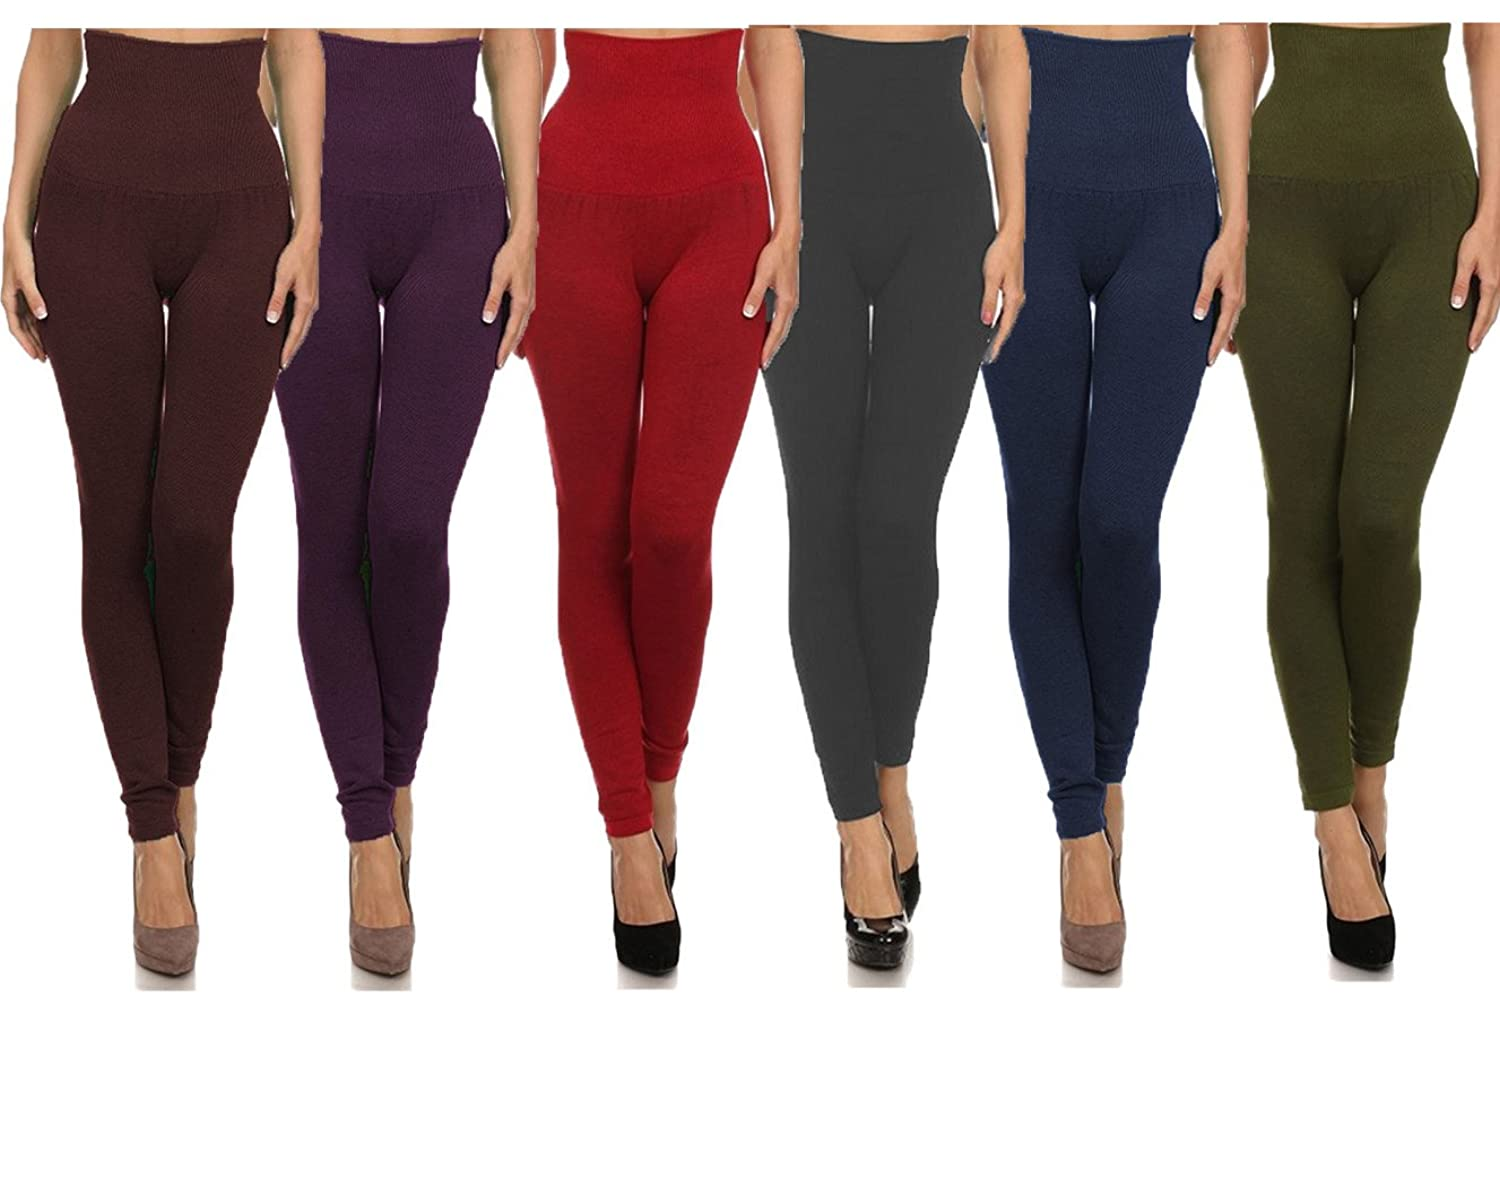 Women Empire Waist Compression Legging OS,Charcoal/Coffee/Navy/Olive/Purple/Red